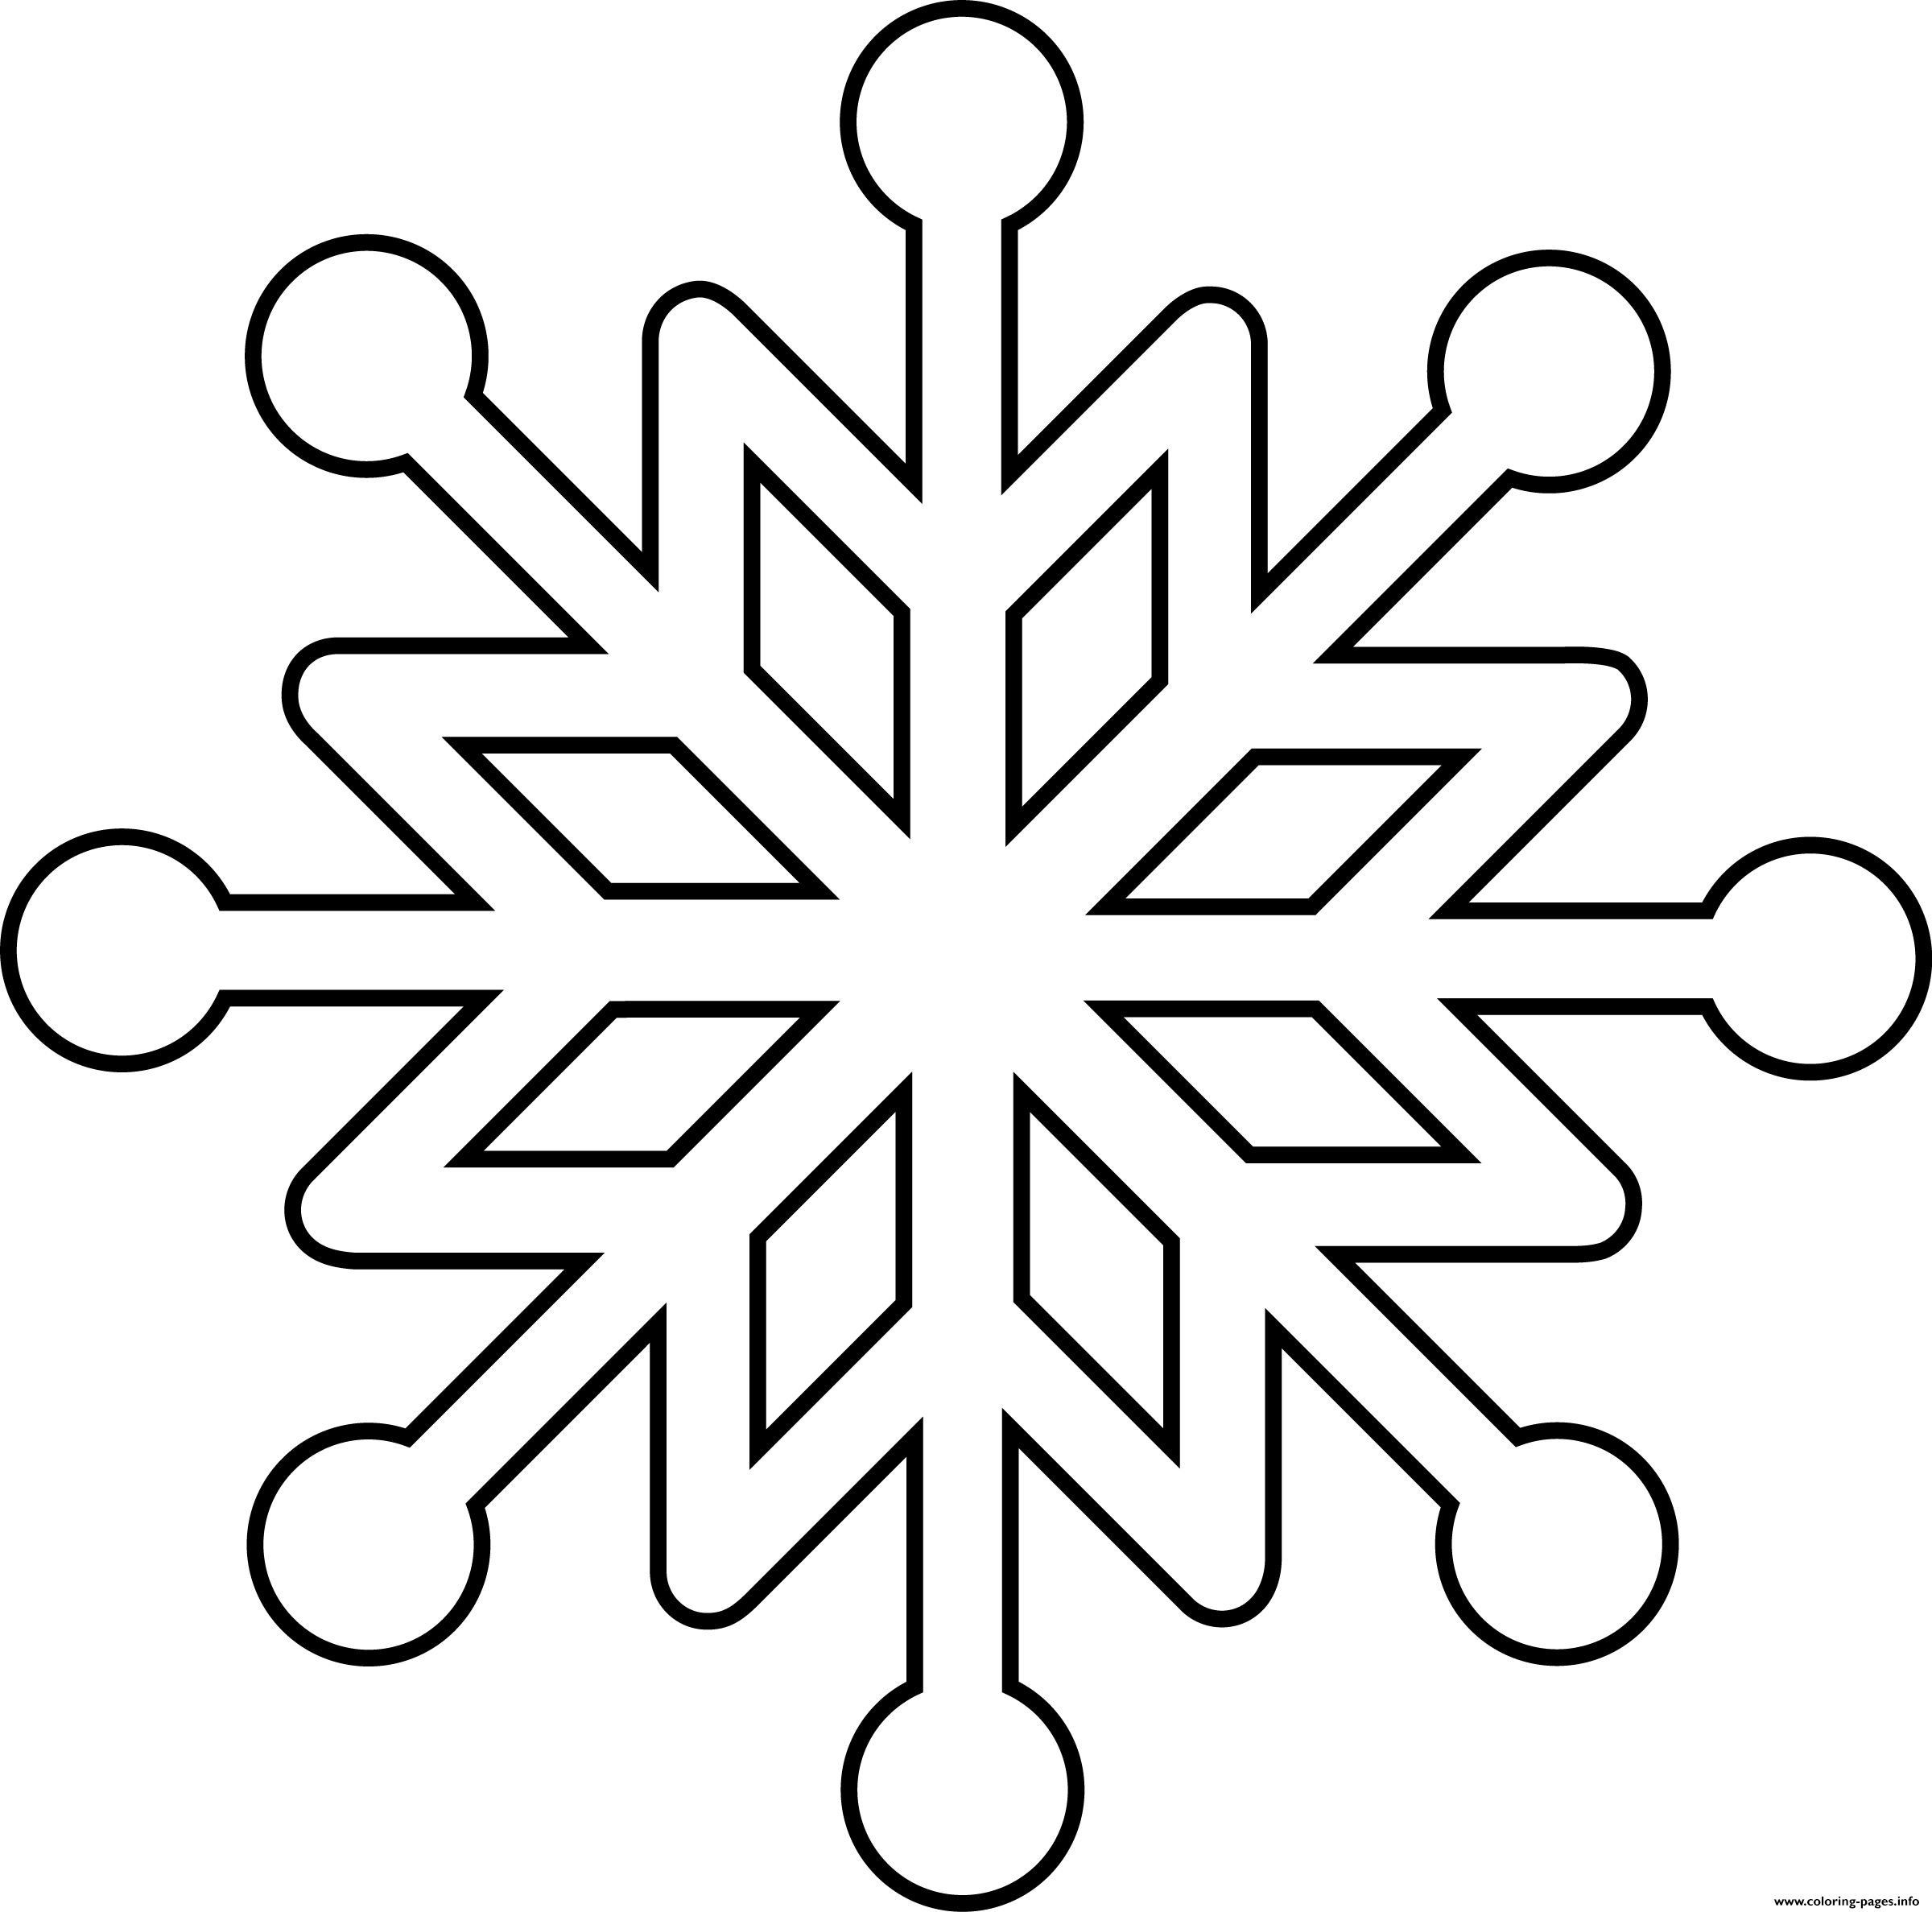 - Snowflake Coloring Pages Png & Free Snowflake Coloring Pages.png